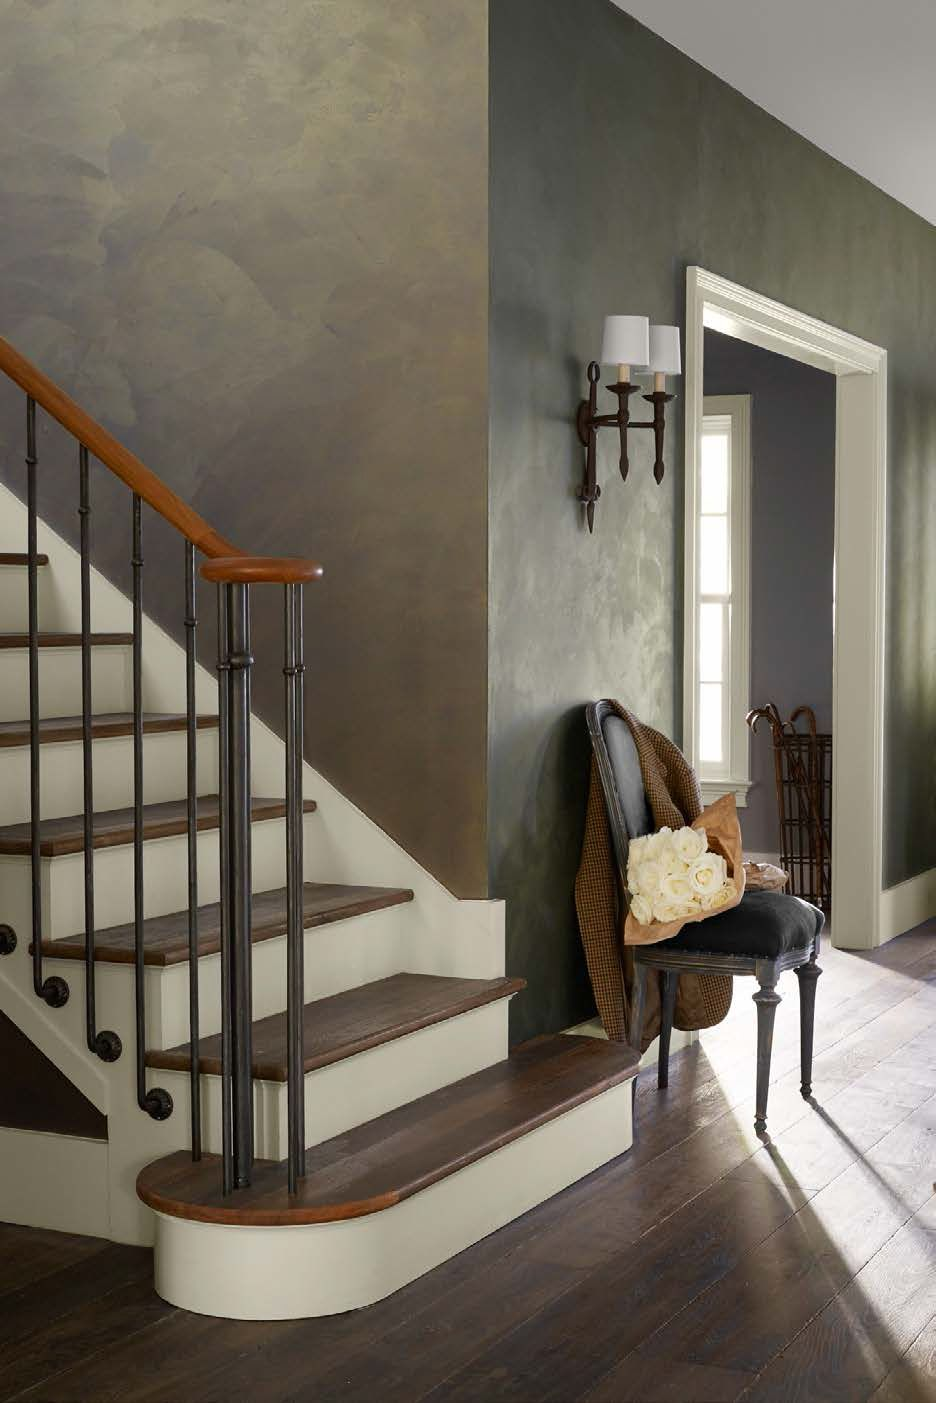 Capture The Layered Beauty Of Timeworn Surfaces With Polished Patina Specialty Finish From Ralph